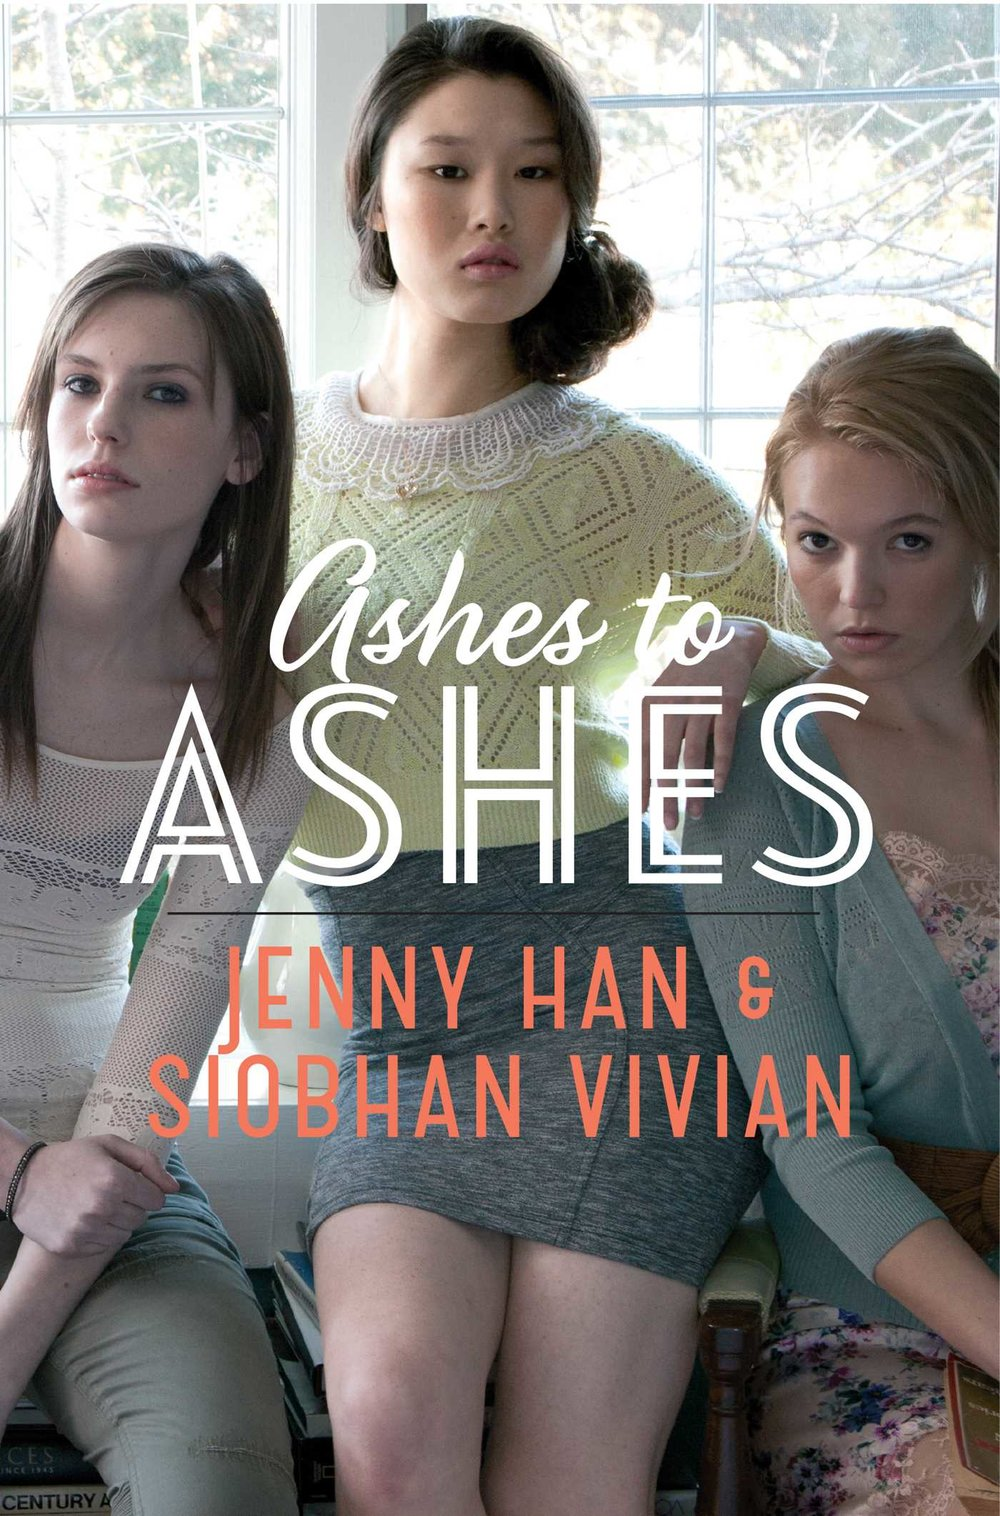 siobhan-vivian-ashes-to-ashes.jpg